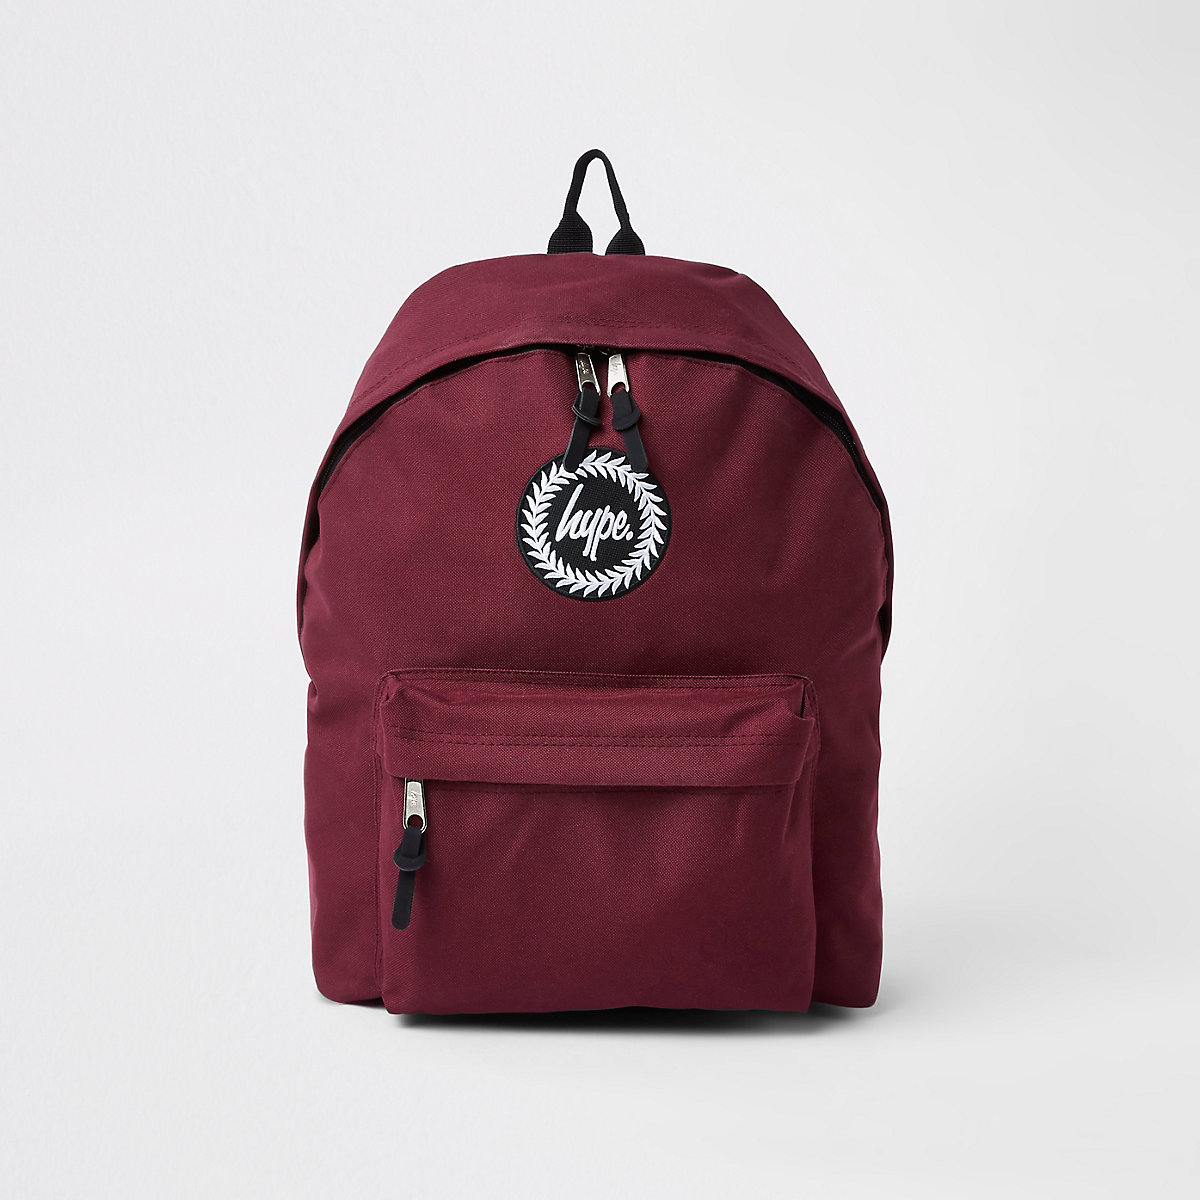 Hype burgundy embroidery backpack - Bags - Sale - men 69e0c21cb2ee4